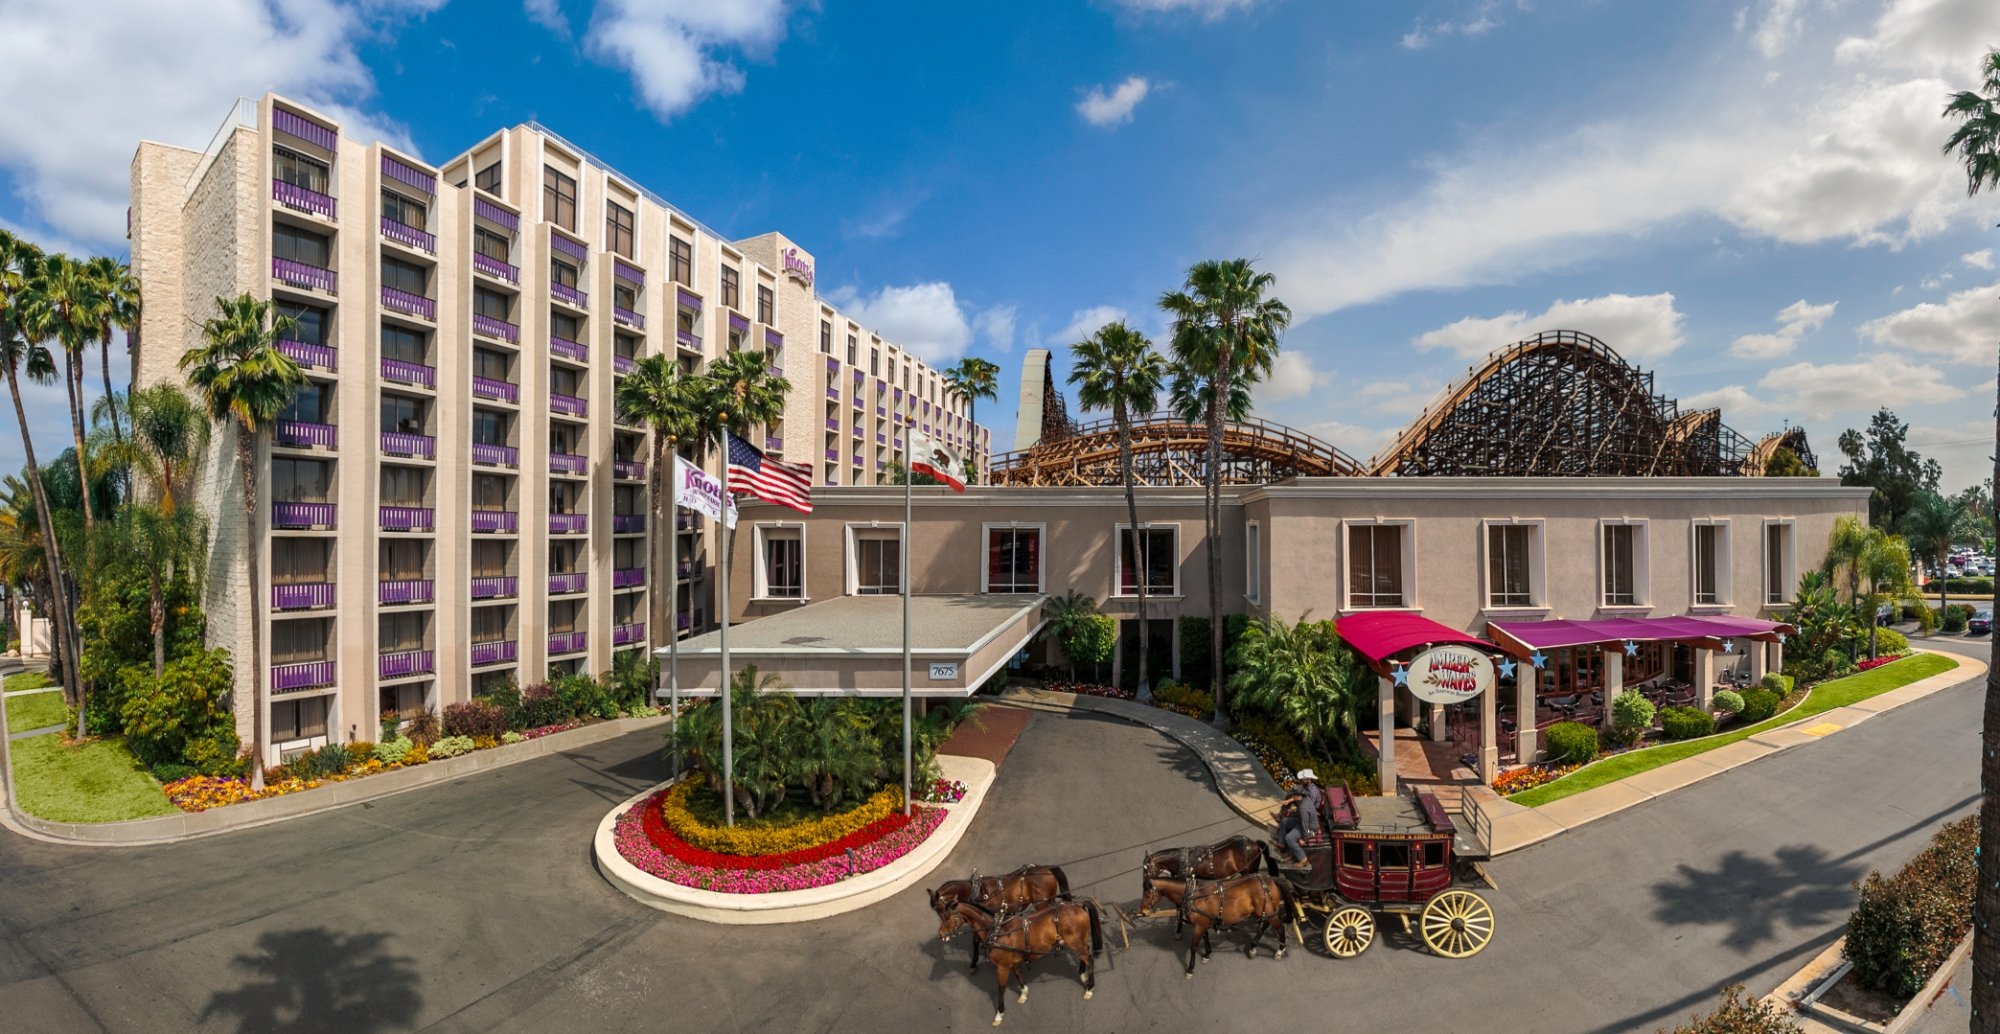 Knott's Berry Farm Hotel.